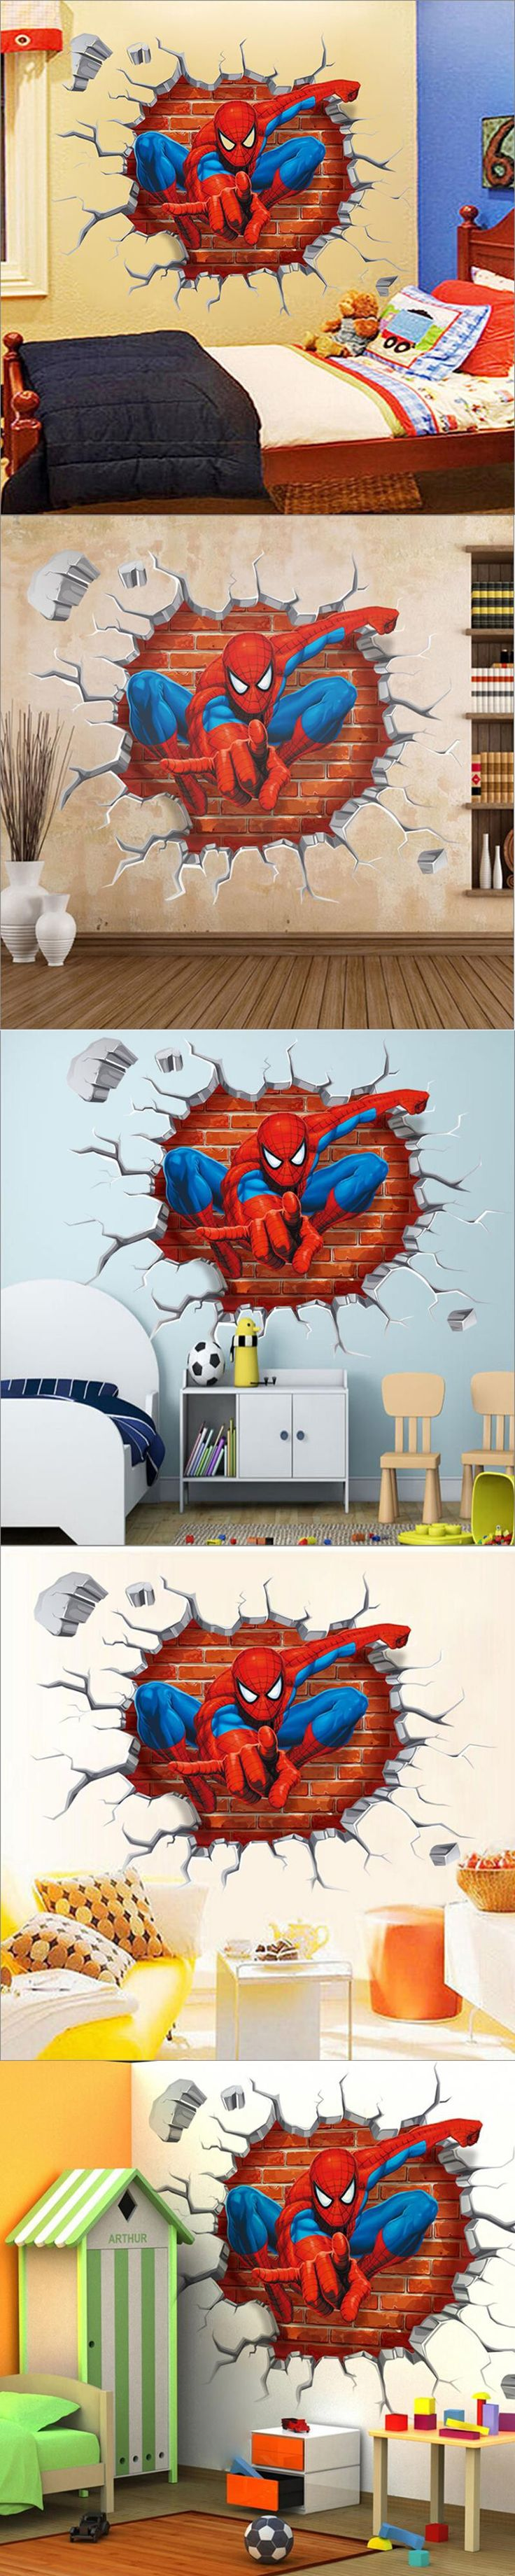 Best 25 personalised wall stickers ideas on pinterest time 2015 3d spiderman wall stickers for kids rooms decals home decor personalized kids nursery wall sticker decoration for boy room amipublicfo Choice Image